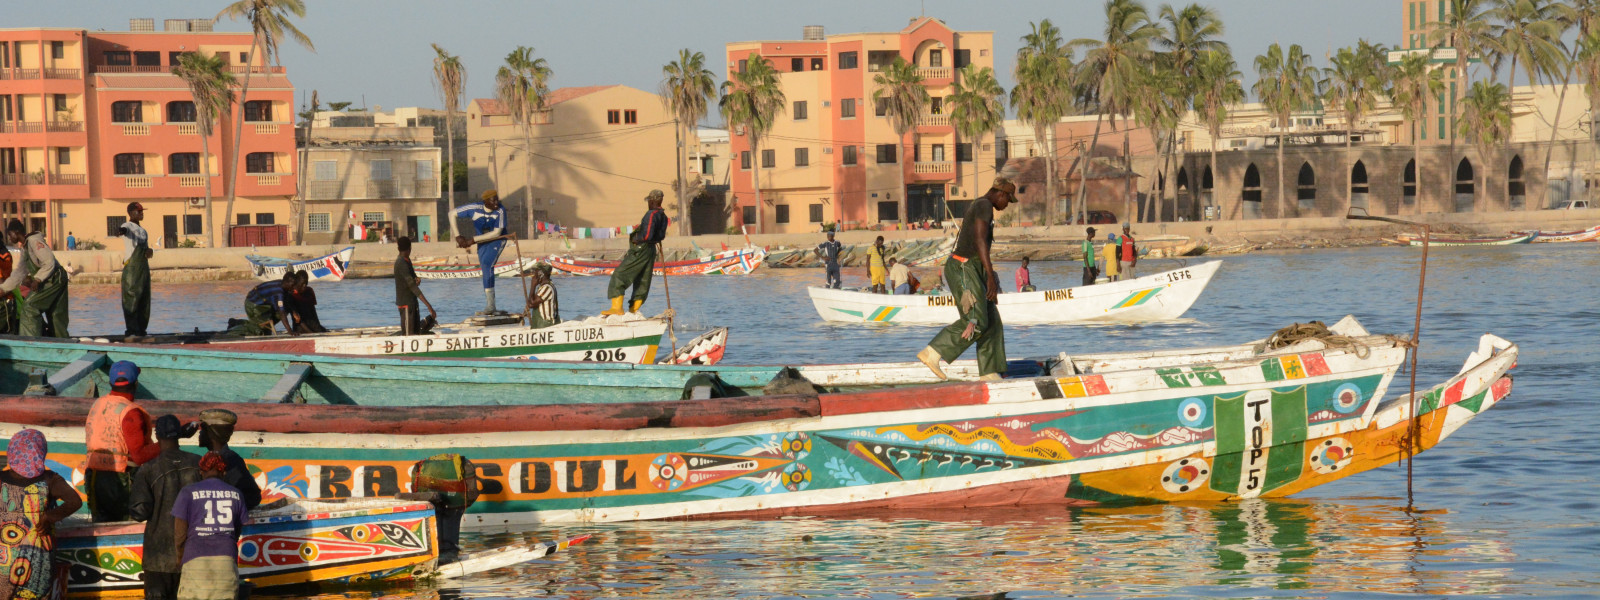 People are walking on and standing beside brightly painted boats by the shore.